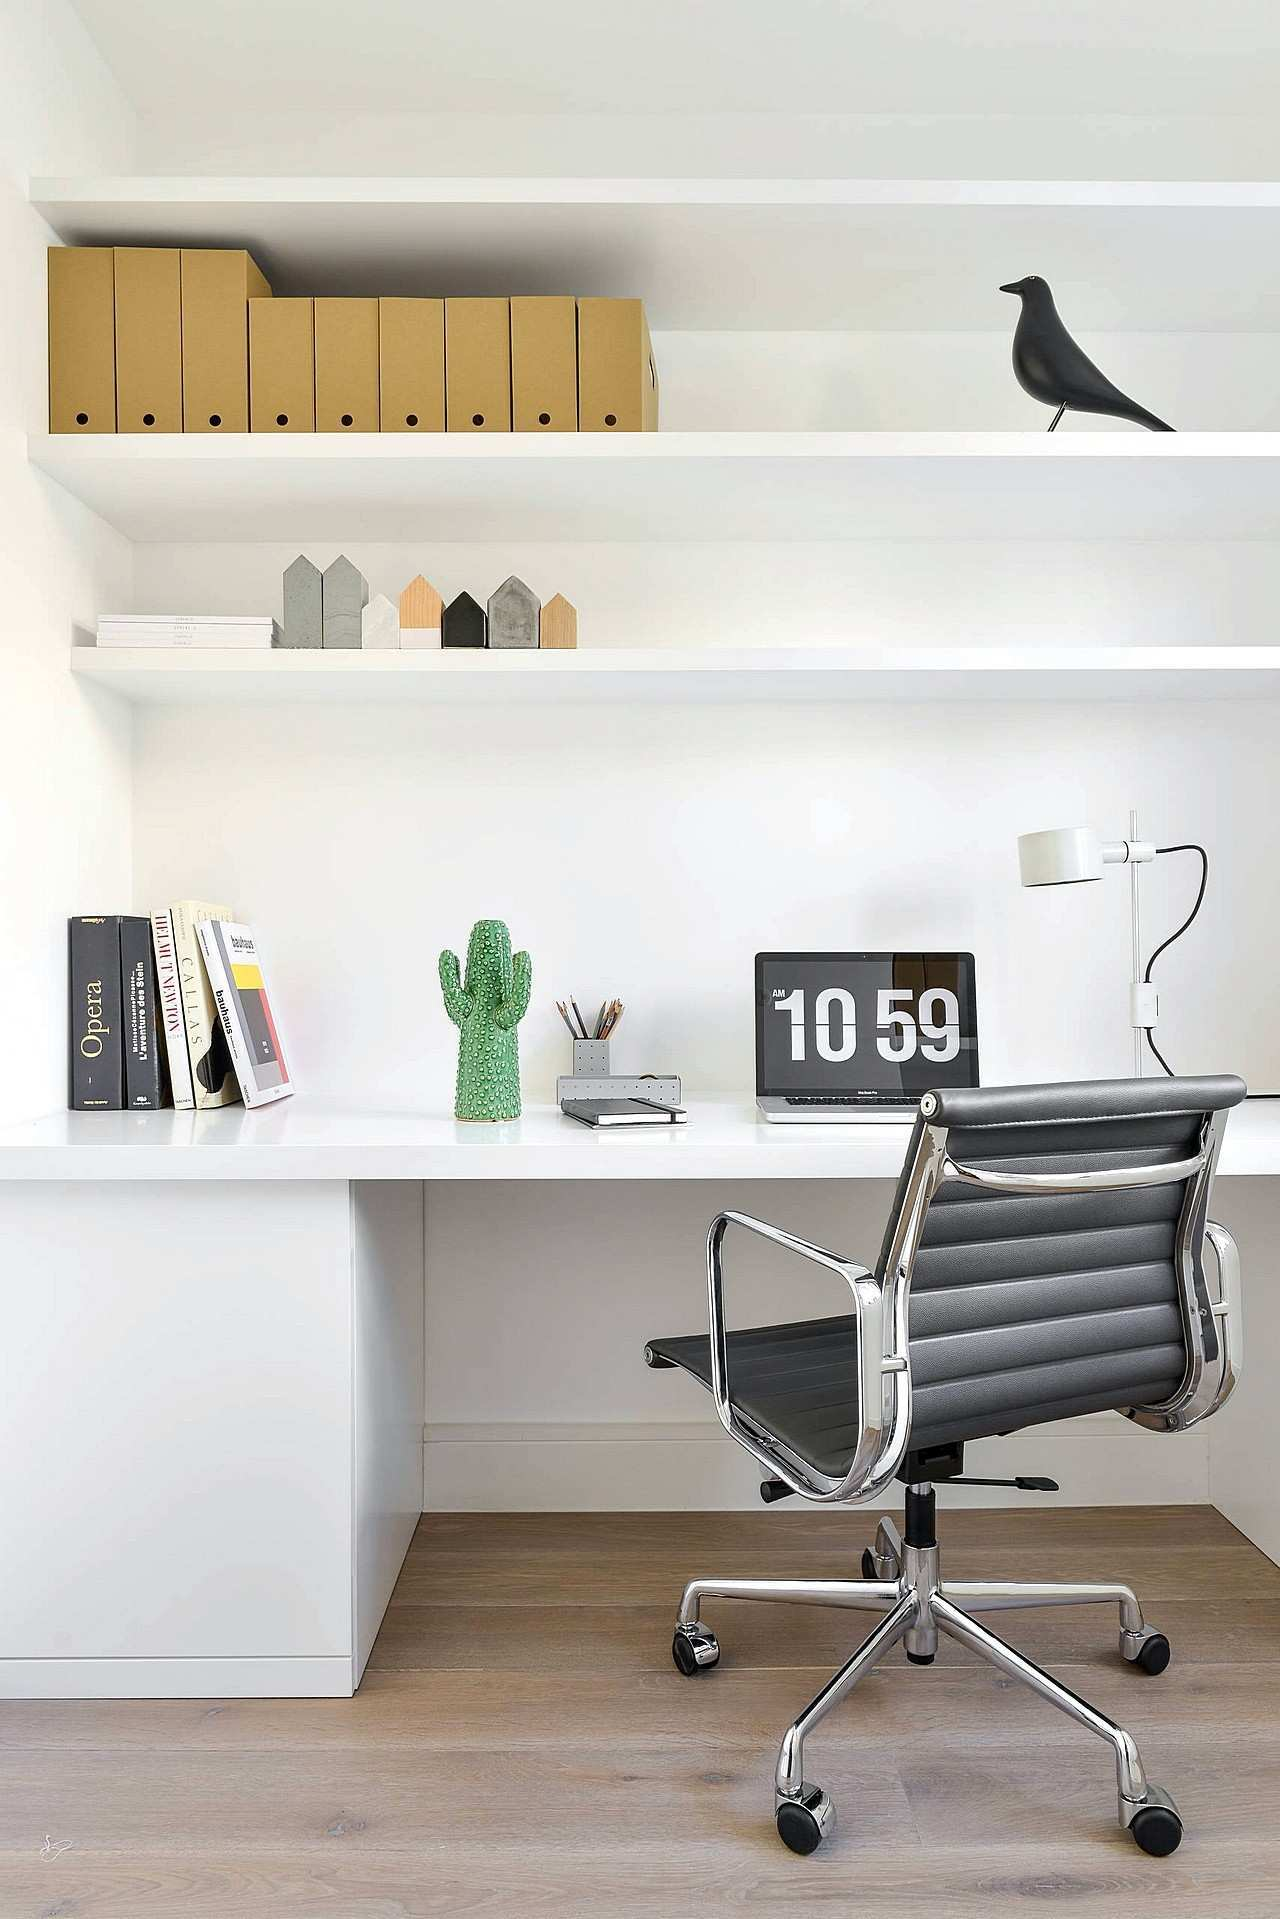 Shelves Awesome Ideas For Shelves fice Design Cubicles